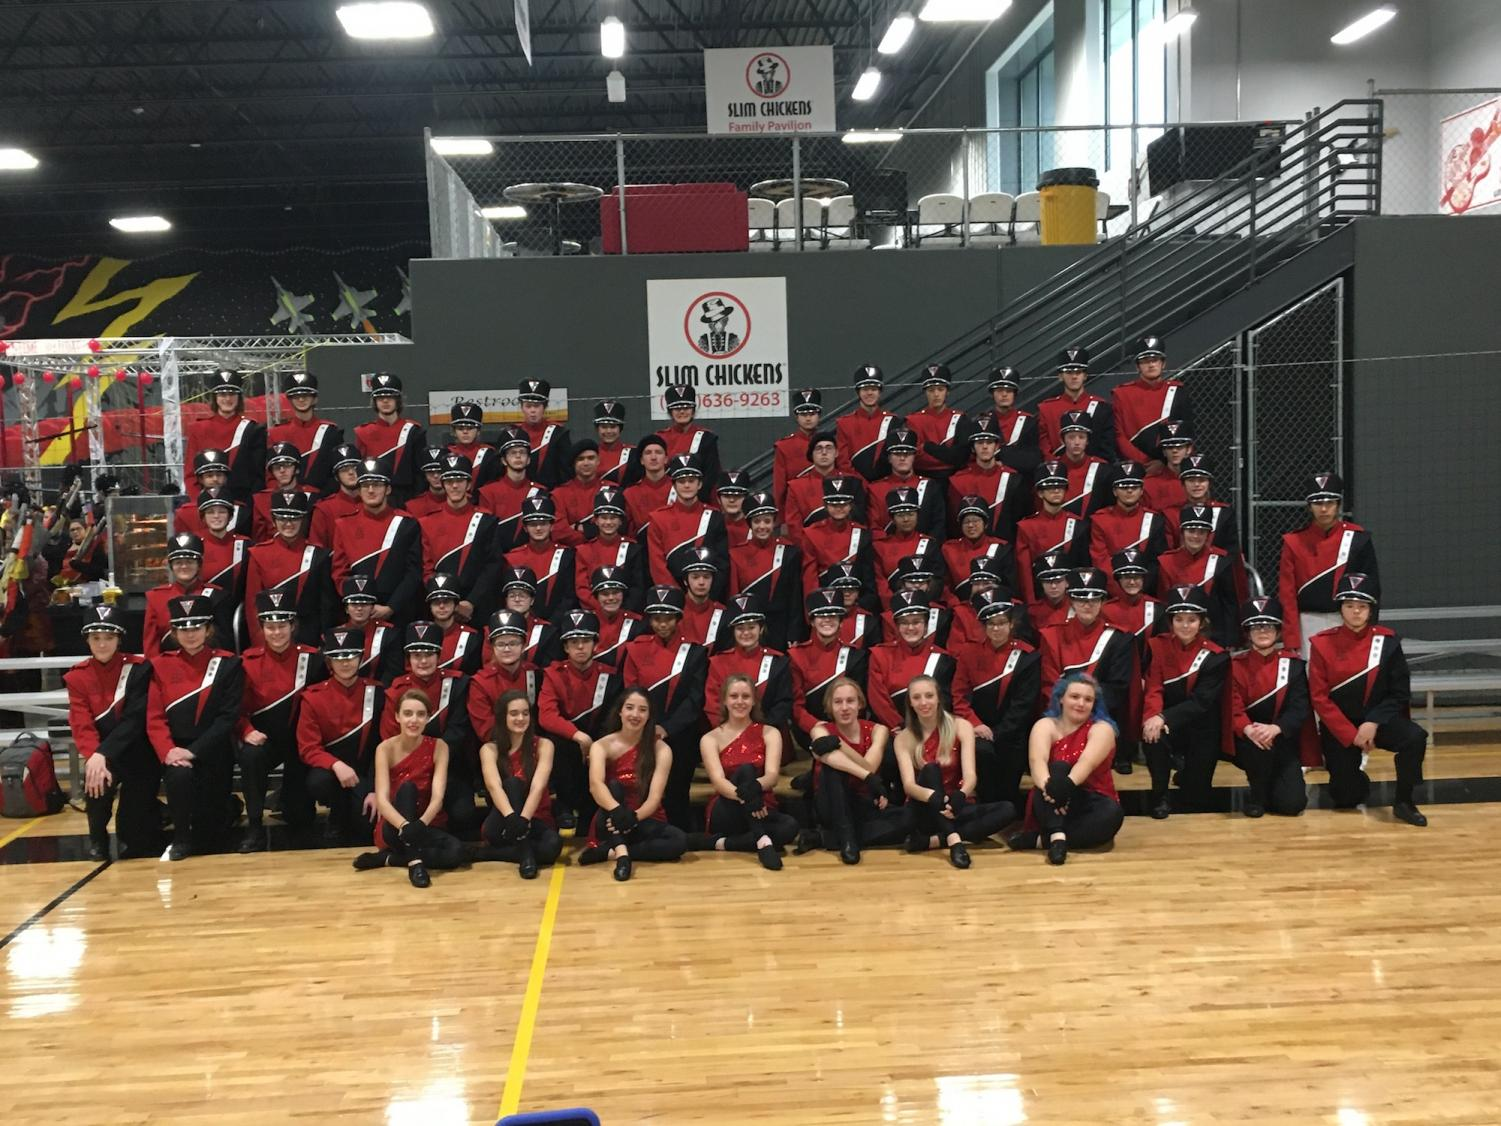 The Rose Hill High School Marching Band took second place at the 2019 Arkalalah Festival.